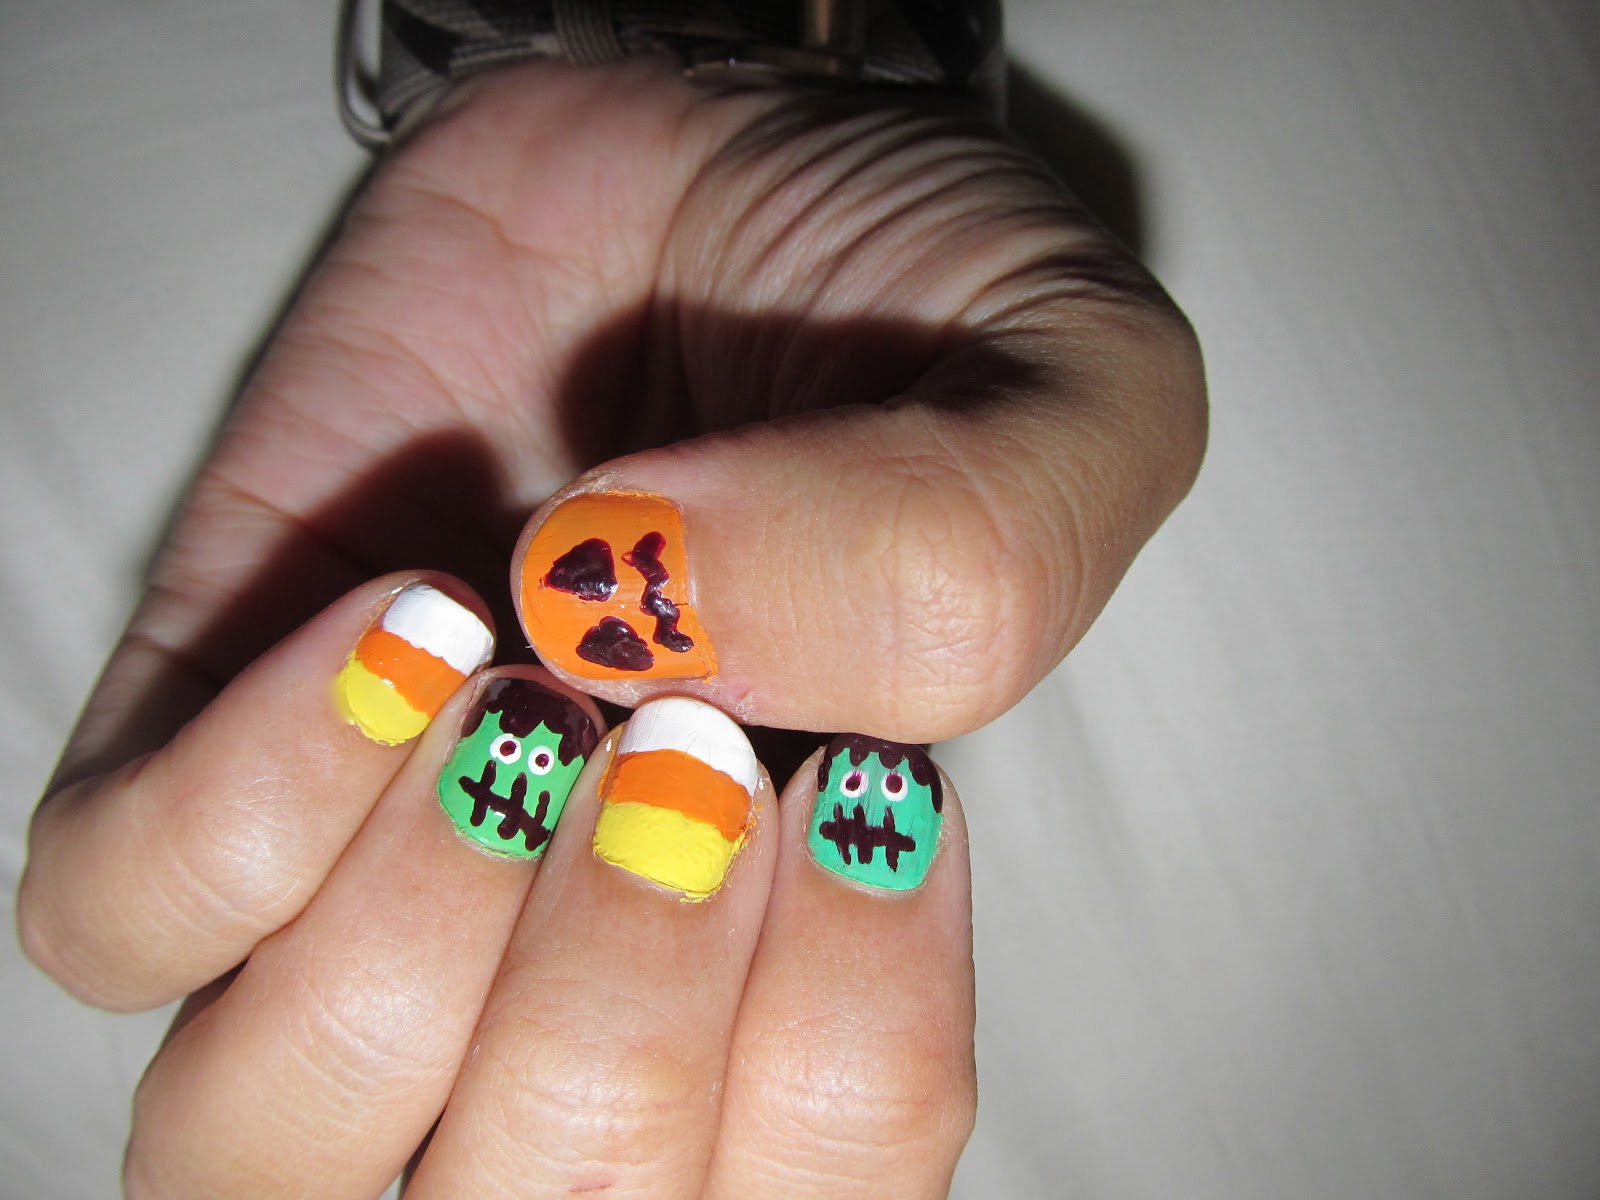 Hippie Chic Pao: Spooky Nails